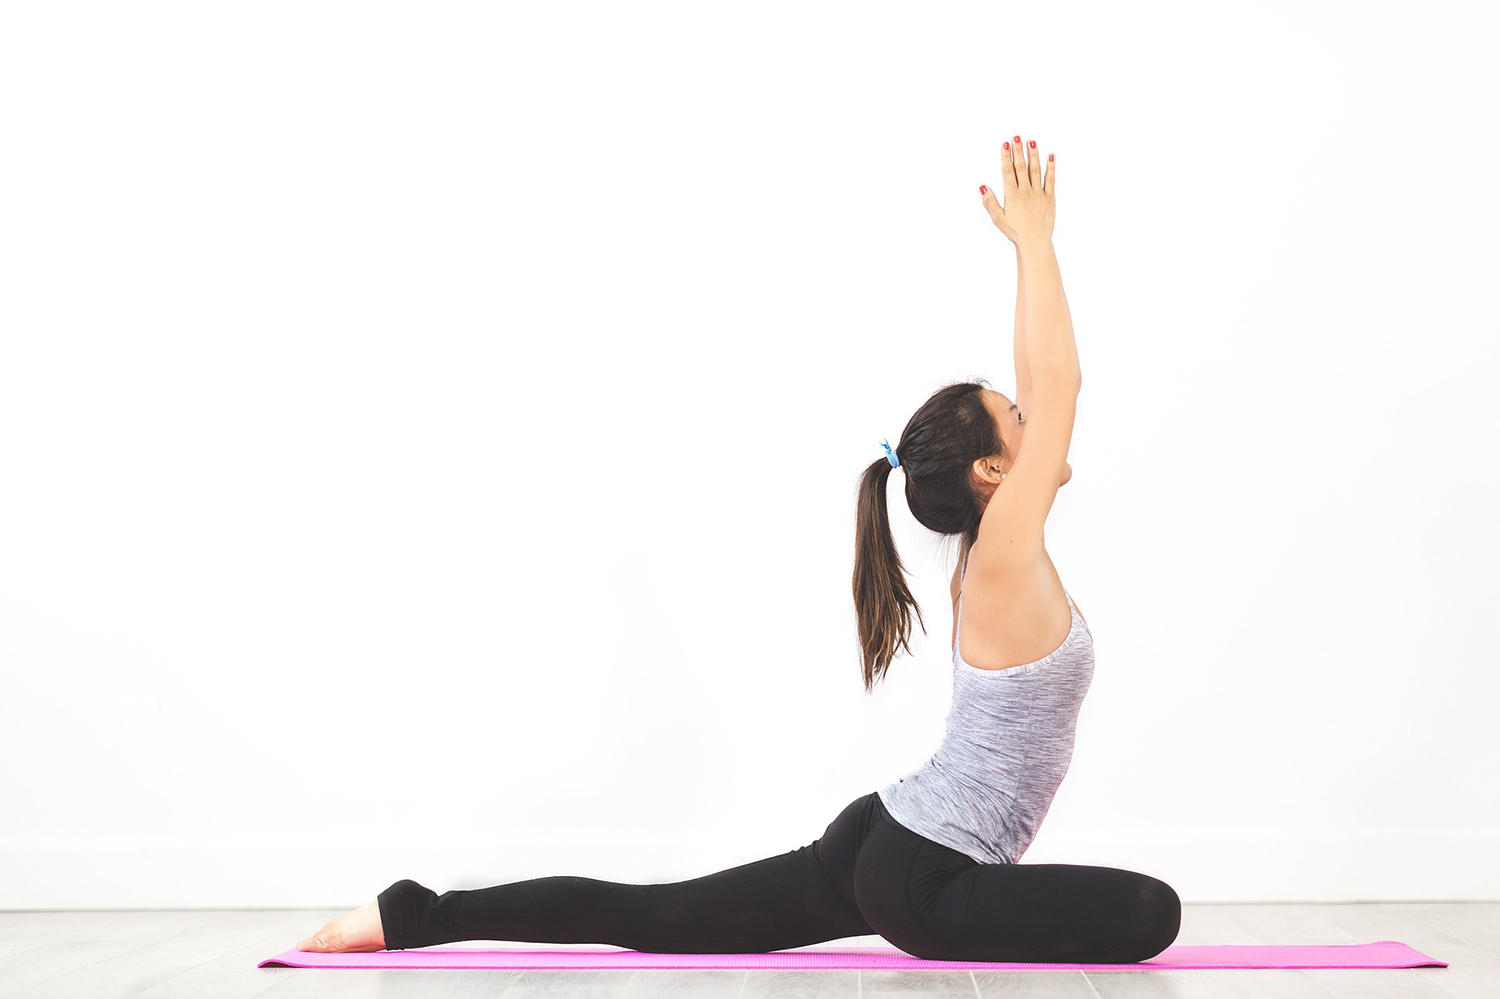 Standing Yoga Poses For Energy